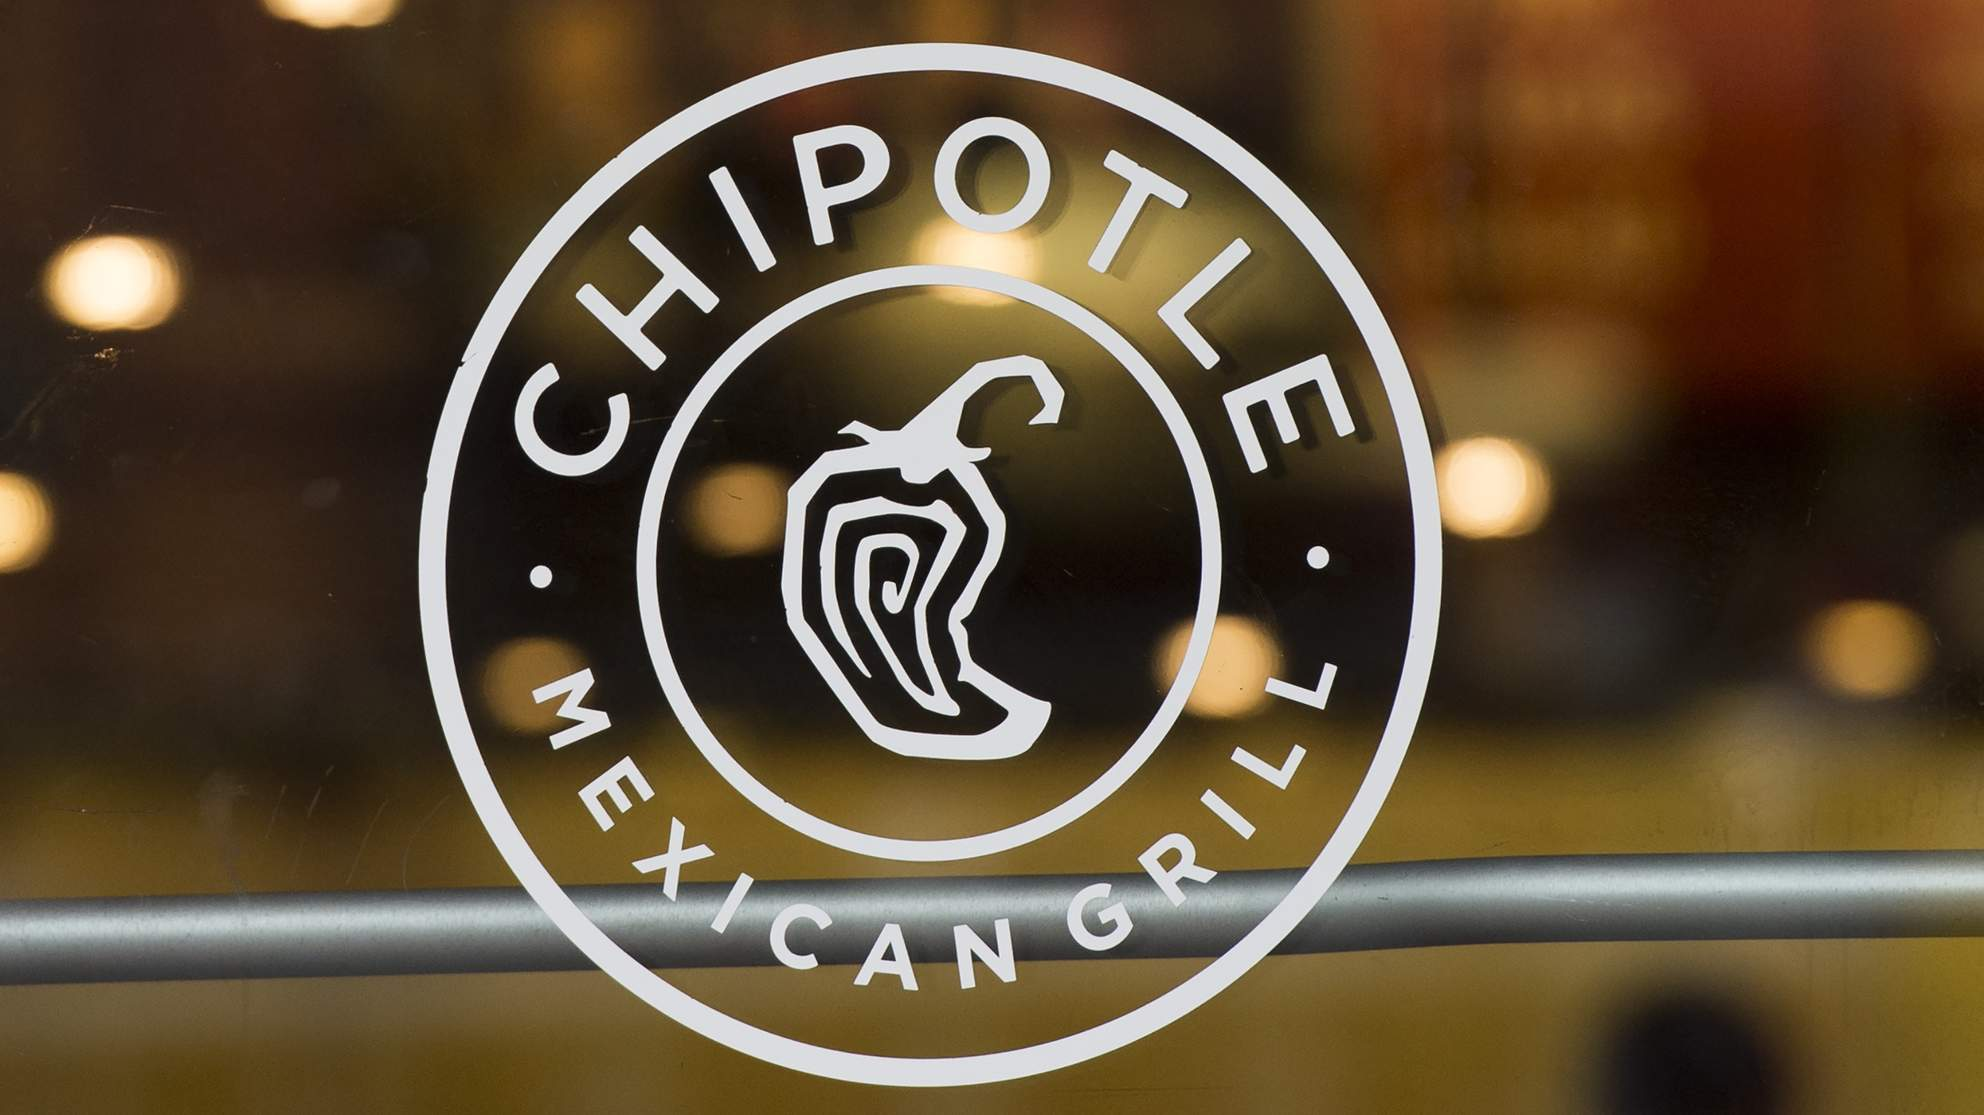 More Than 600 People Say Eating Chipotle Made Them Sick—But Officials Still Don't Know the Cause